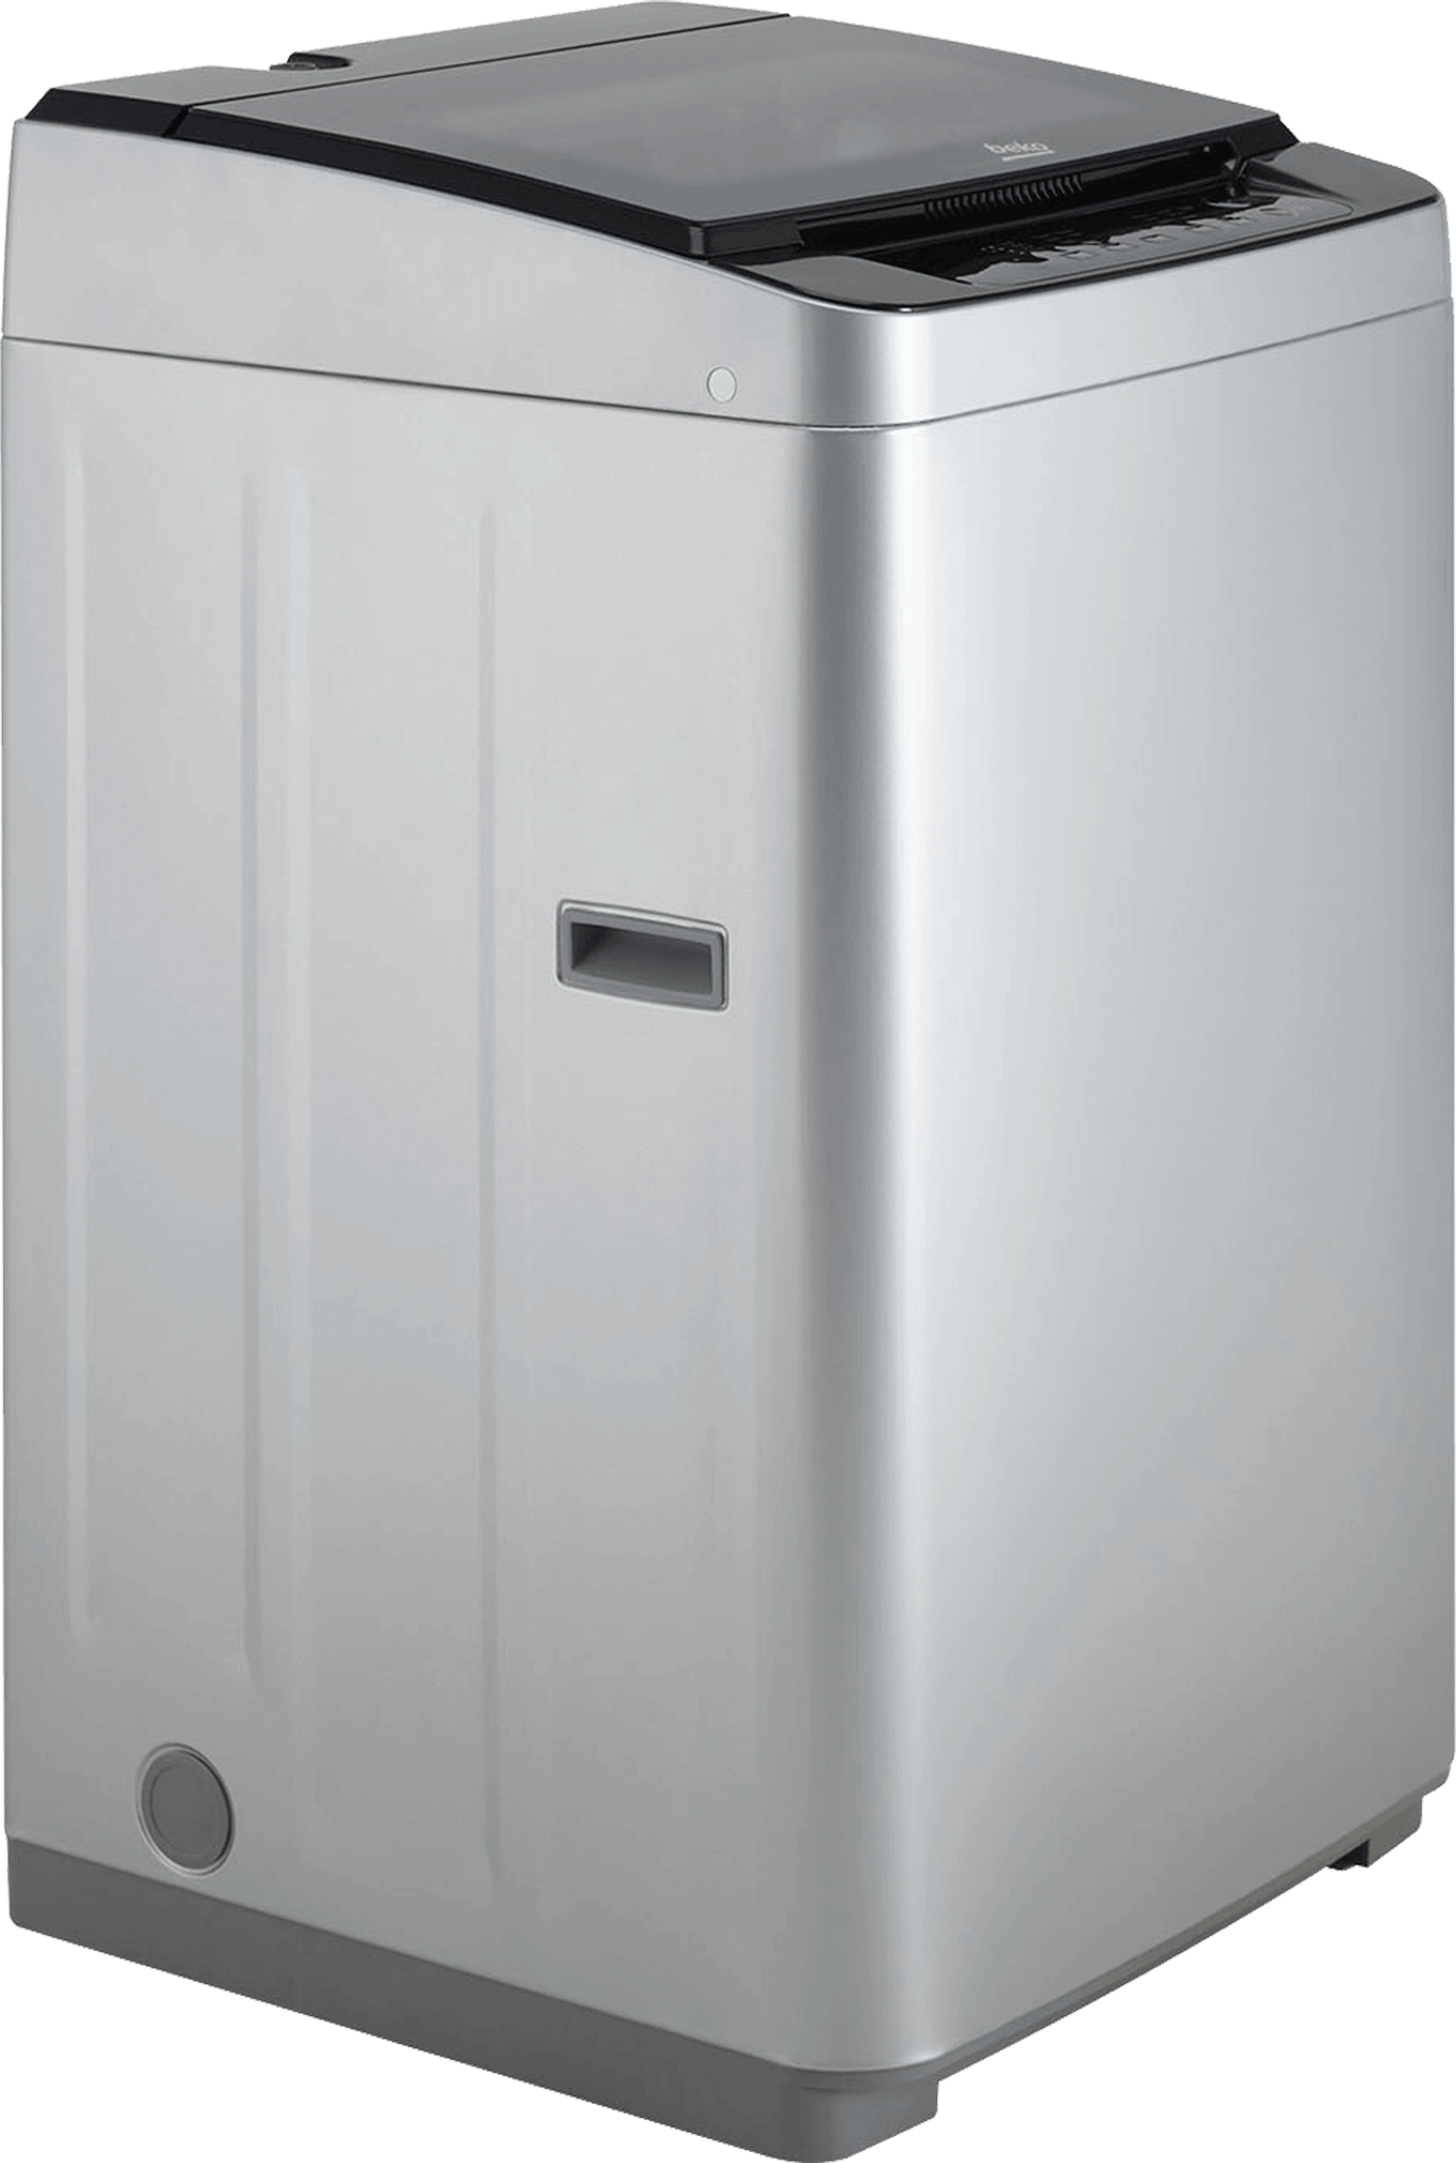 Automatic Top-Loading Washing Machine (8 kg) BTU8086S